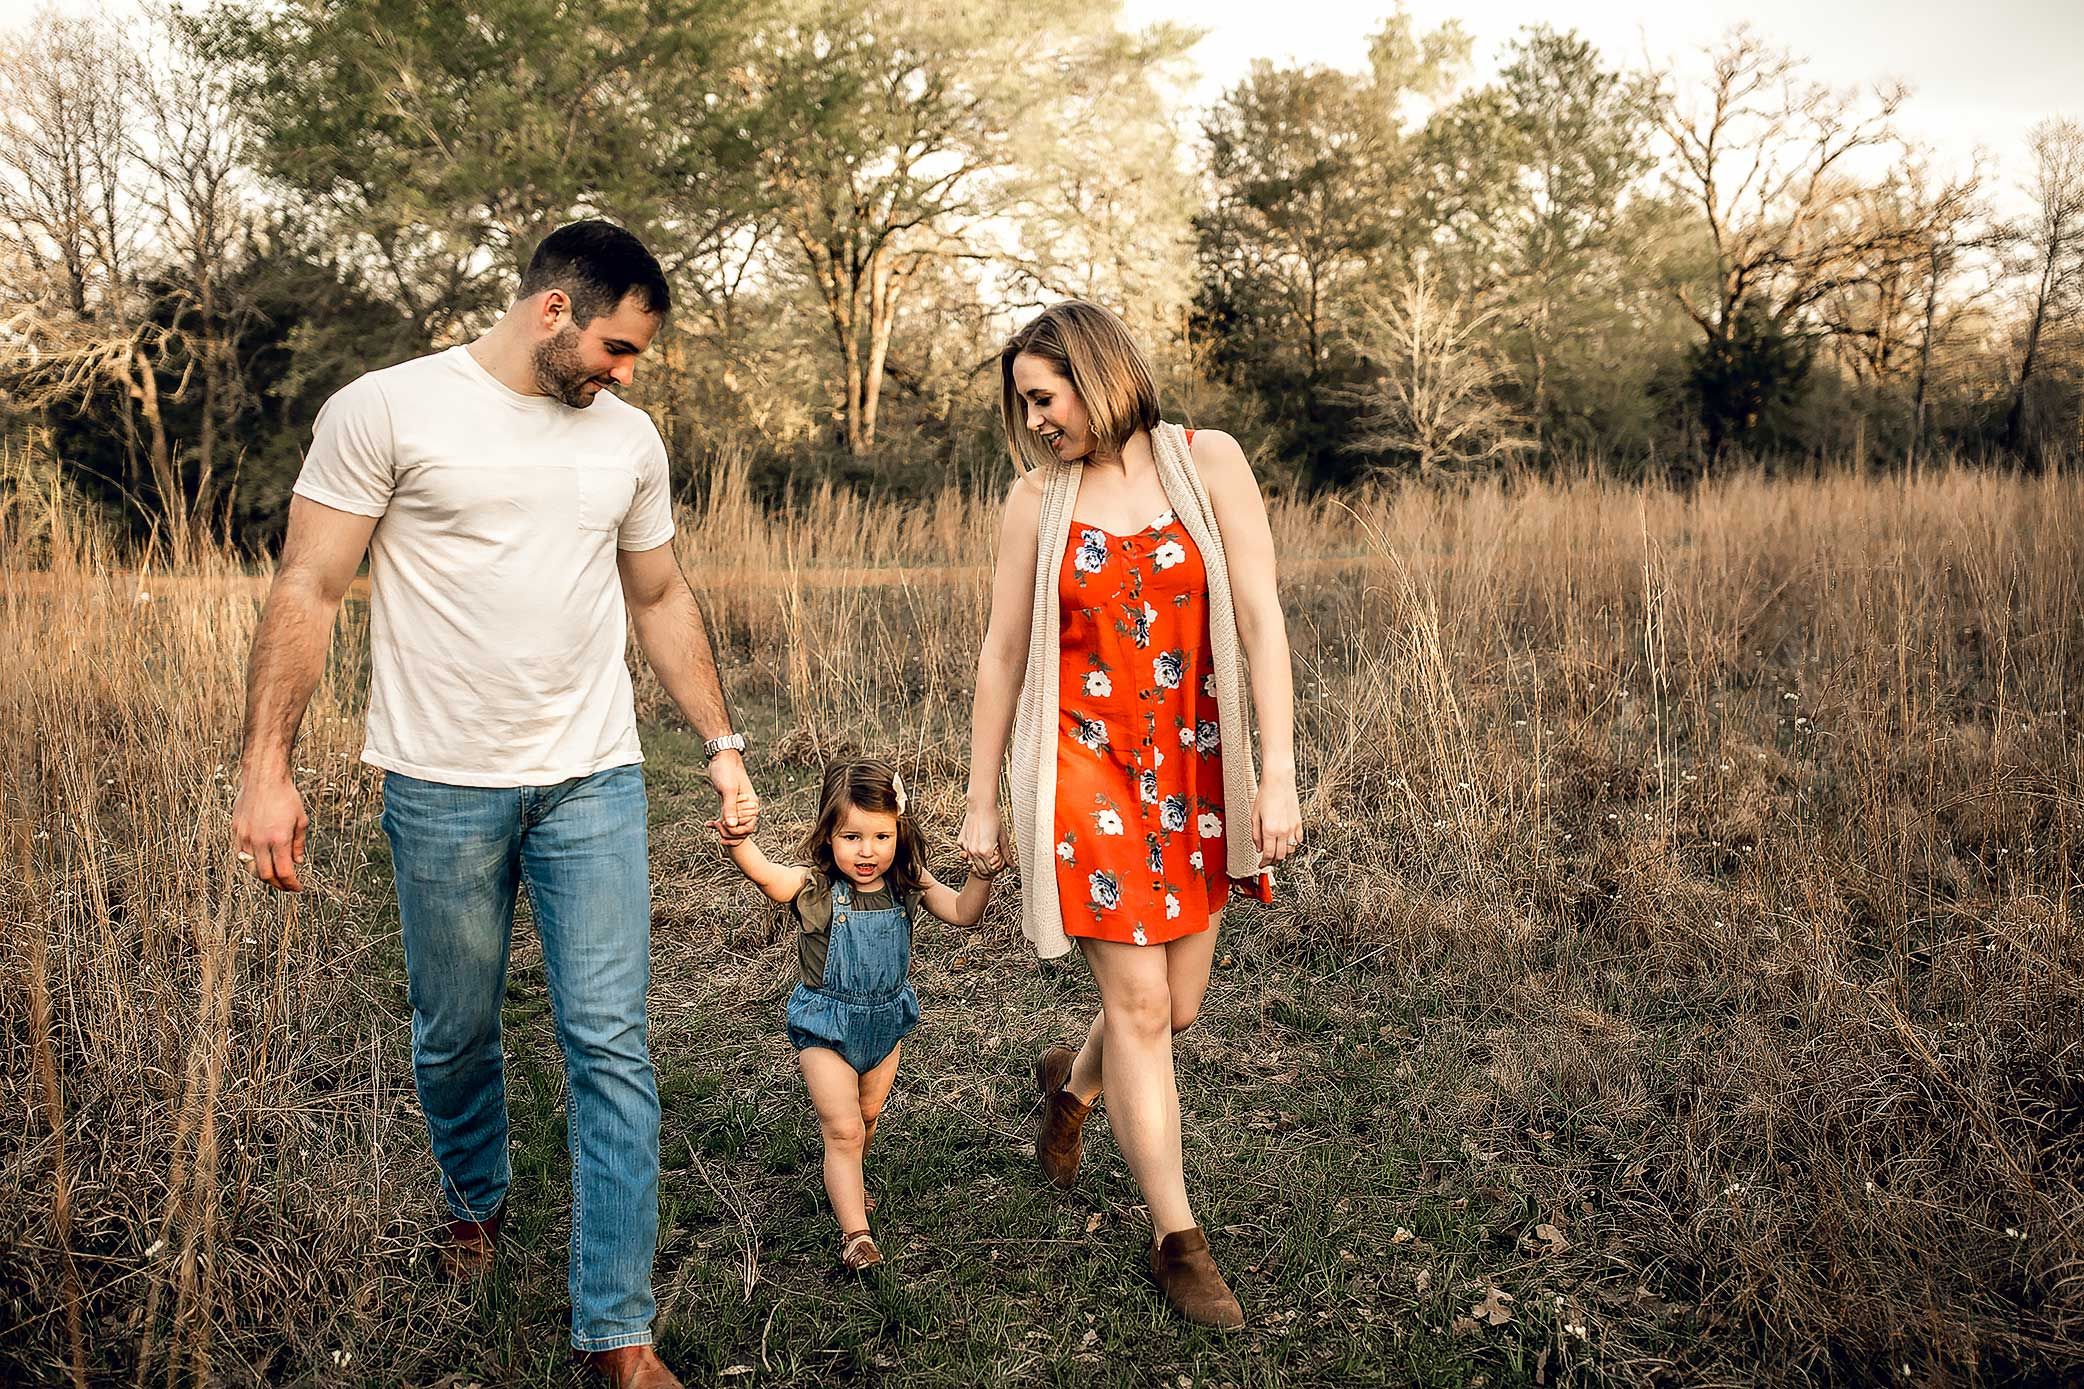 shelby-schiller-photography-sunset-family-pictures-spring-2019-29.jpg